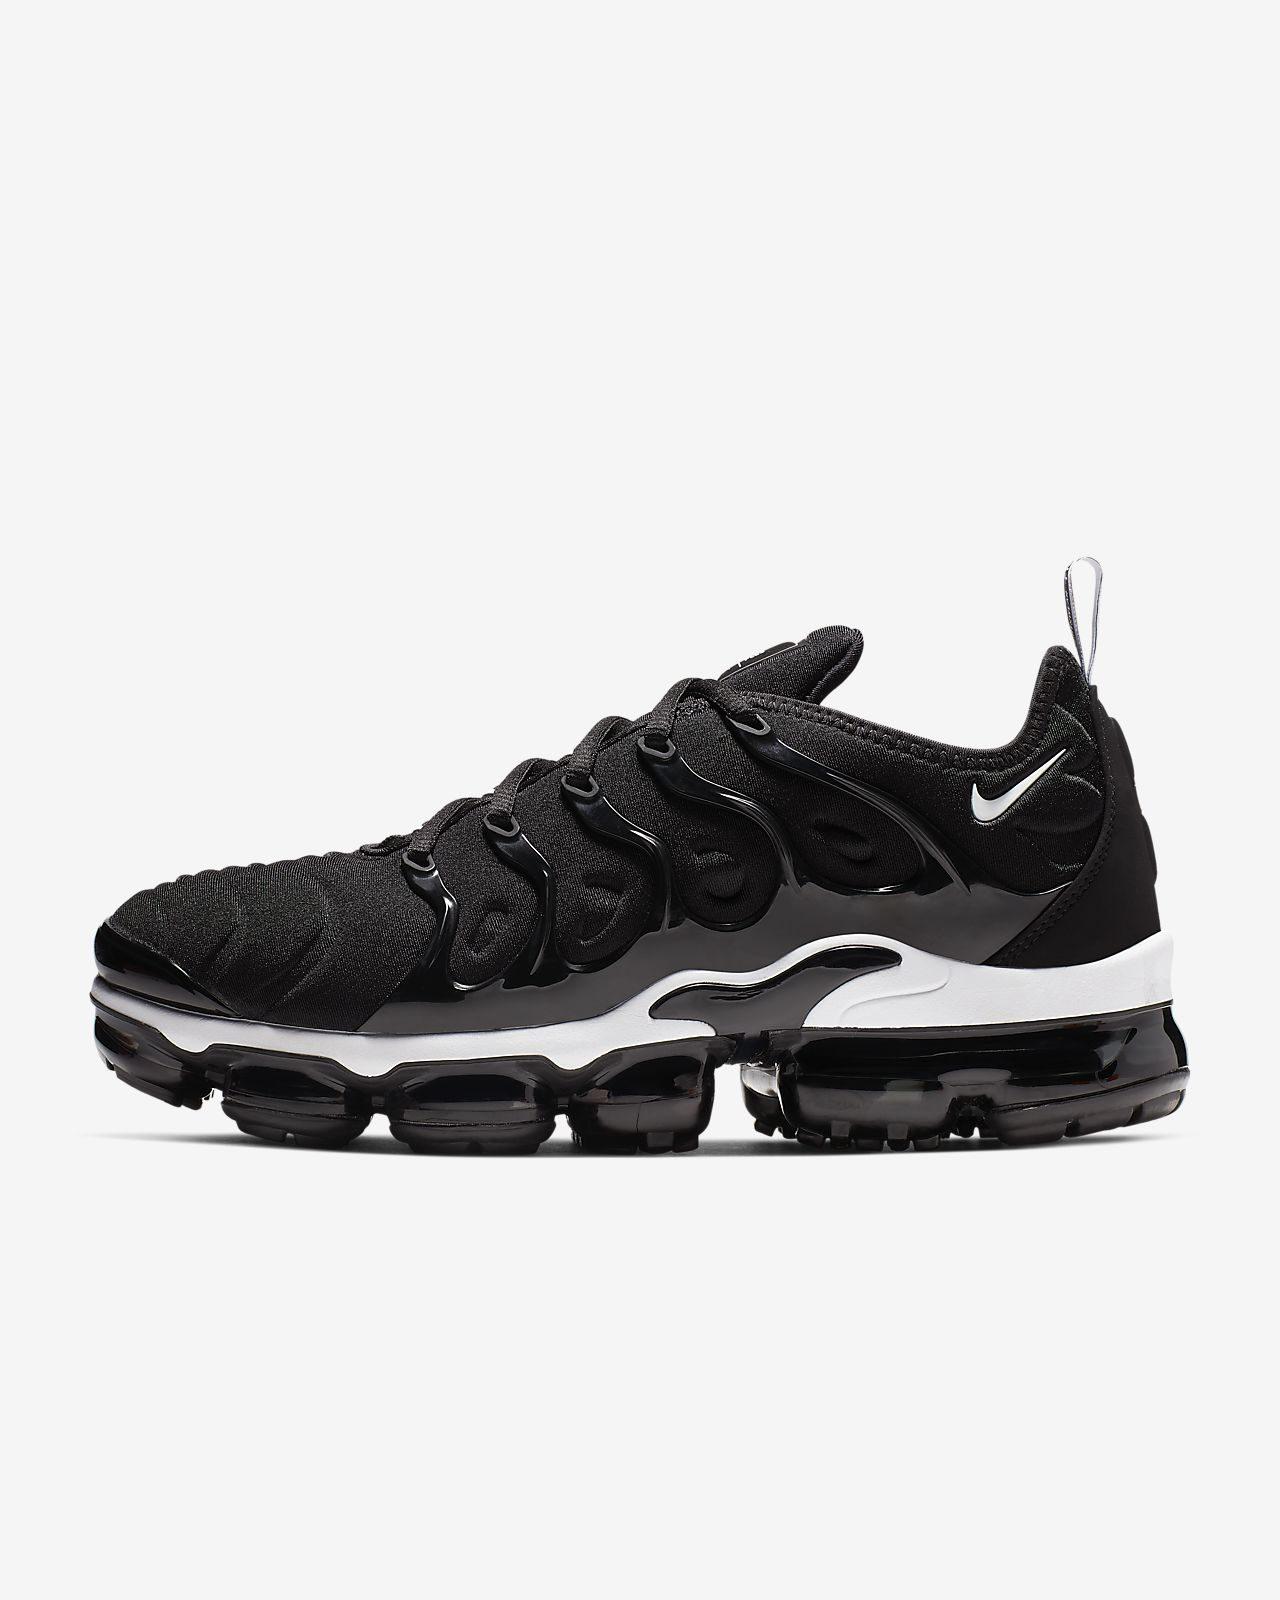 6db7056b30d2 Nike Air VaporMax Plus Men s Shoe. Nike.com GB